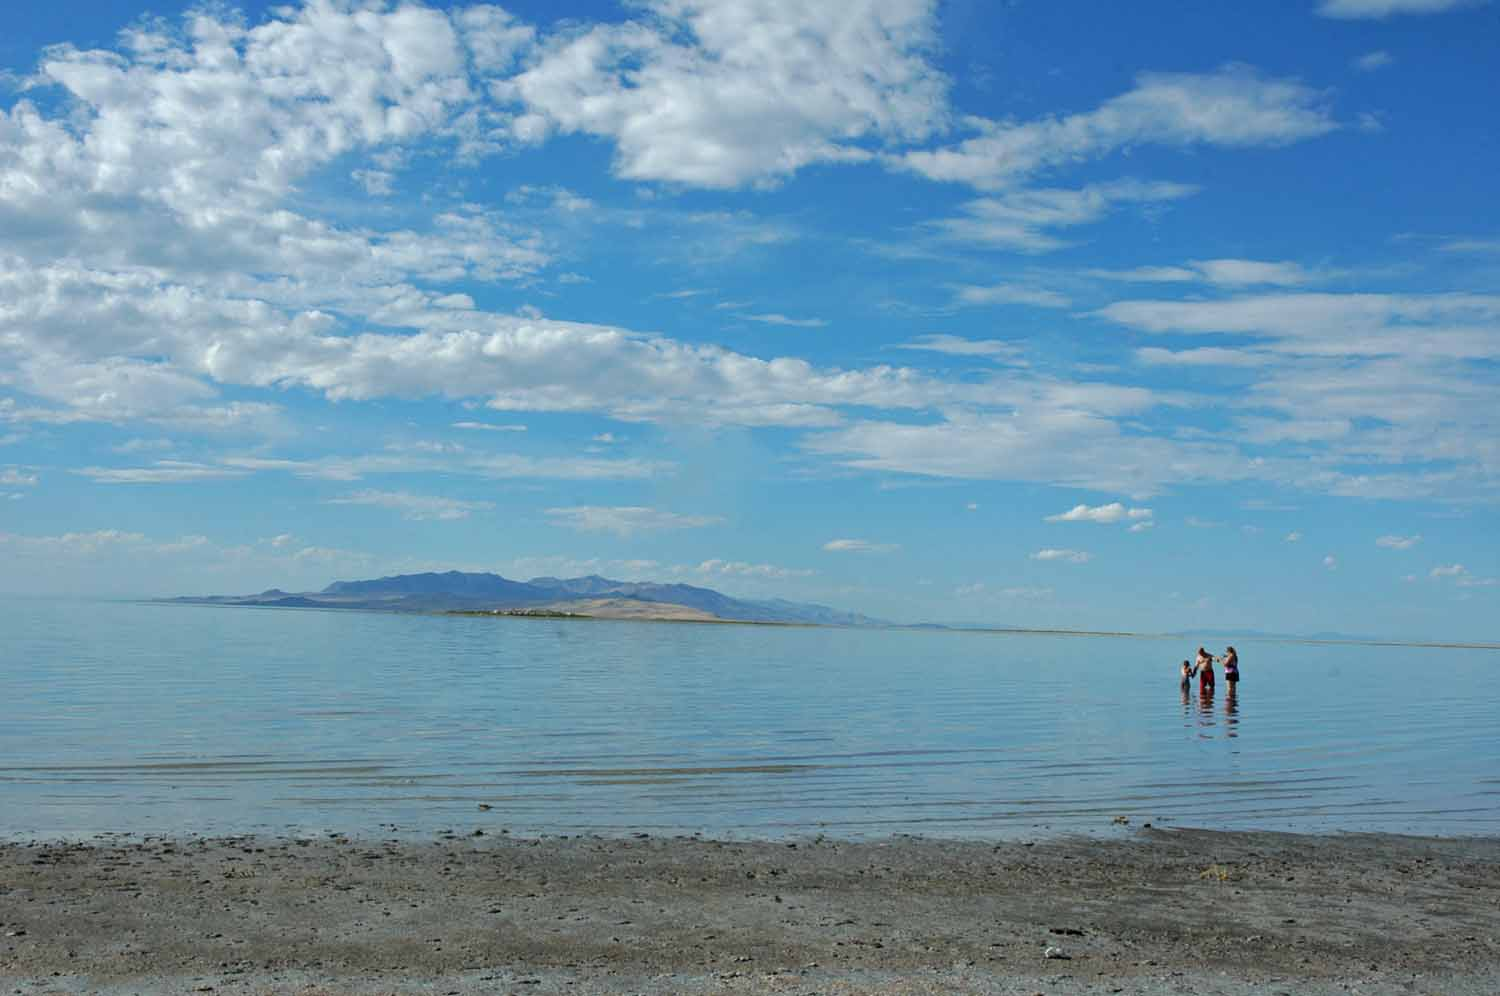 Yes, I got in the Great Salt Lake - It is salty and not very nice